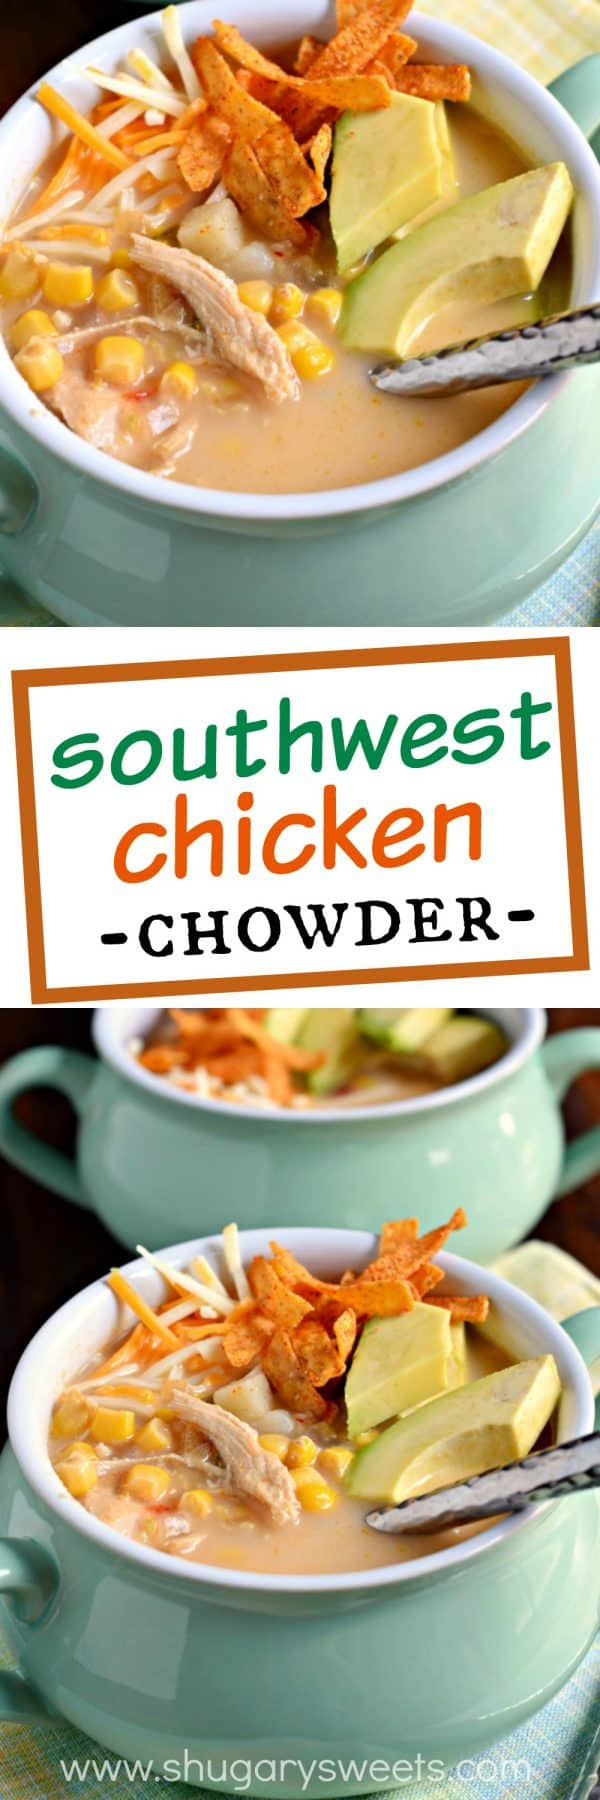 Get our your slow cooker, this Southwest Chicken Chowder is a fix and forget it dinner recipe! Packed with potatoes, corn and chicken, you'll love the kick of flavor from the jalapenos, salsa and taco seasoning!